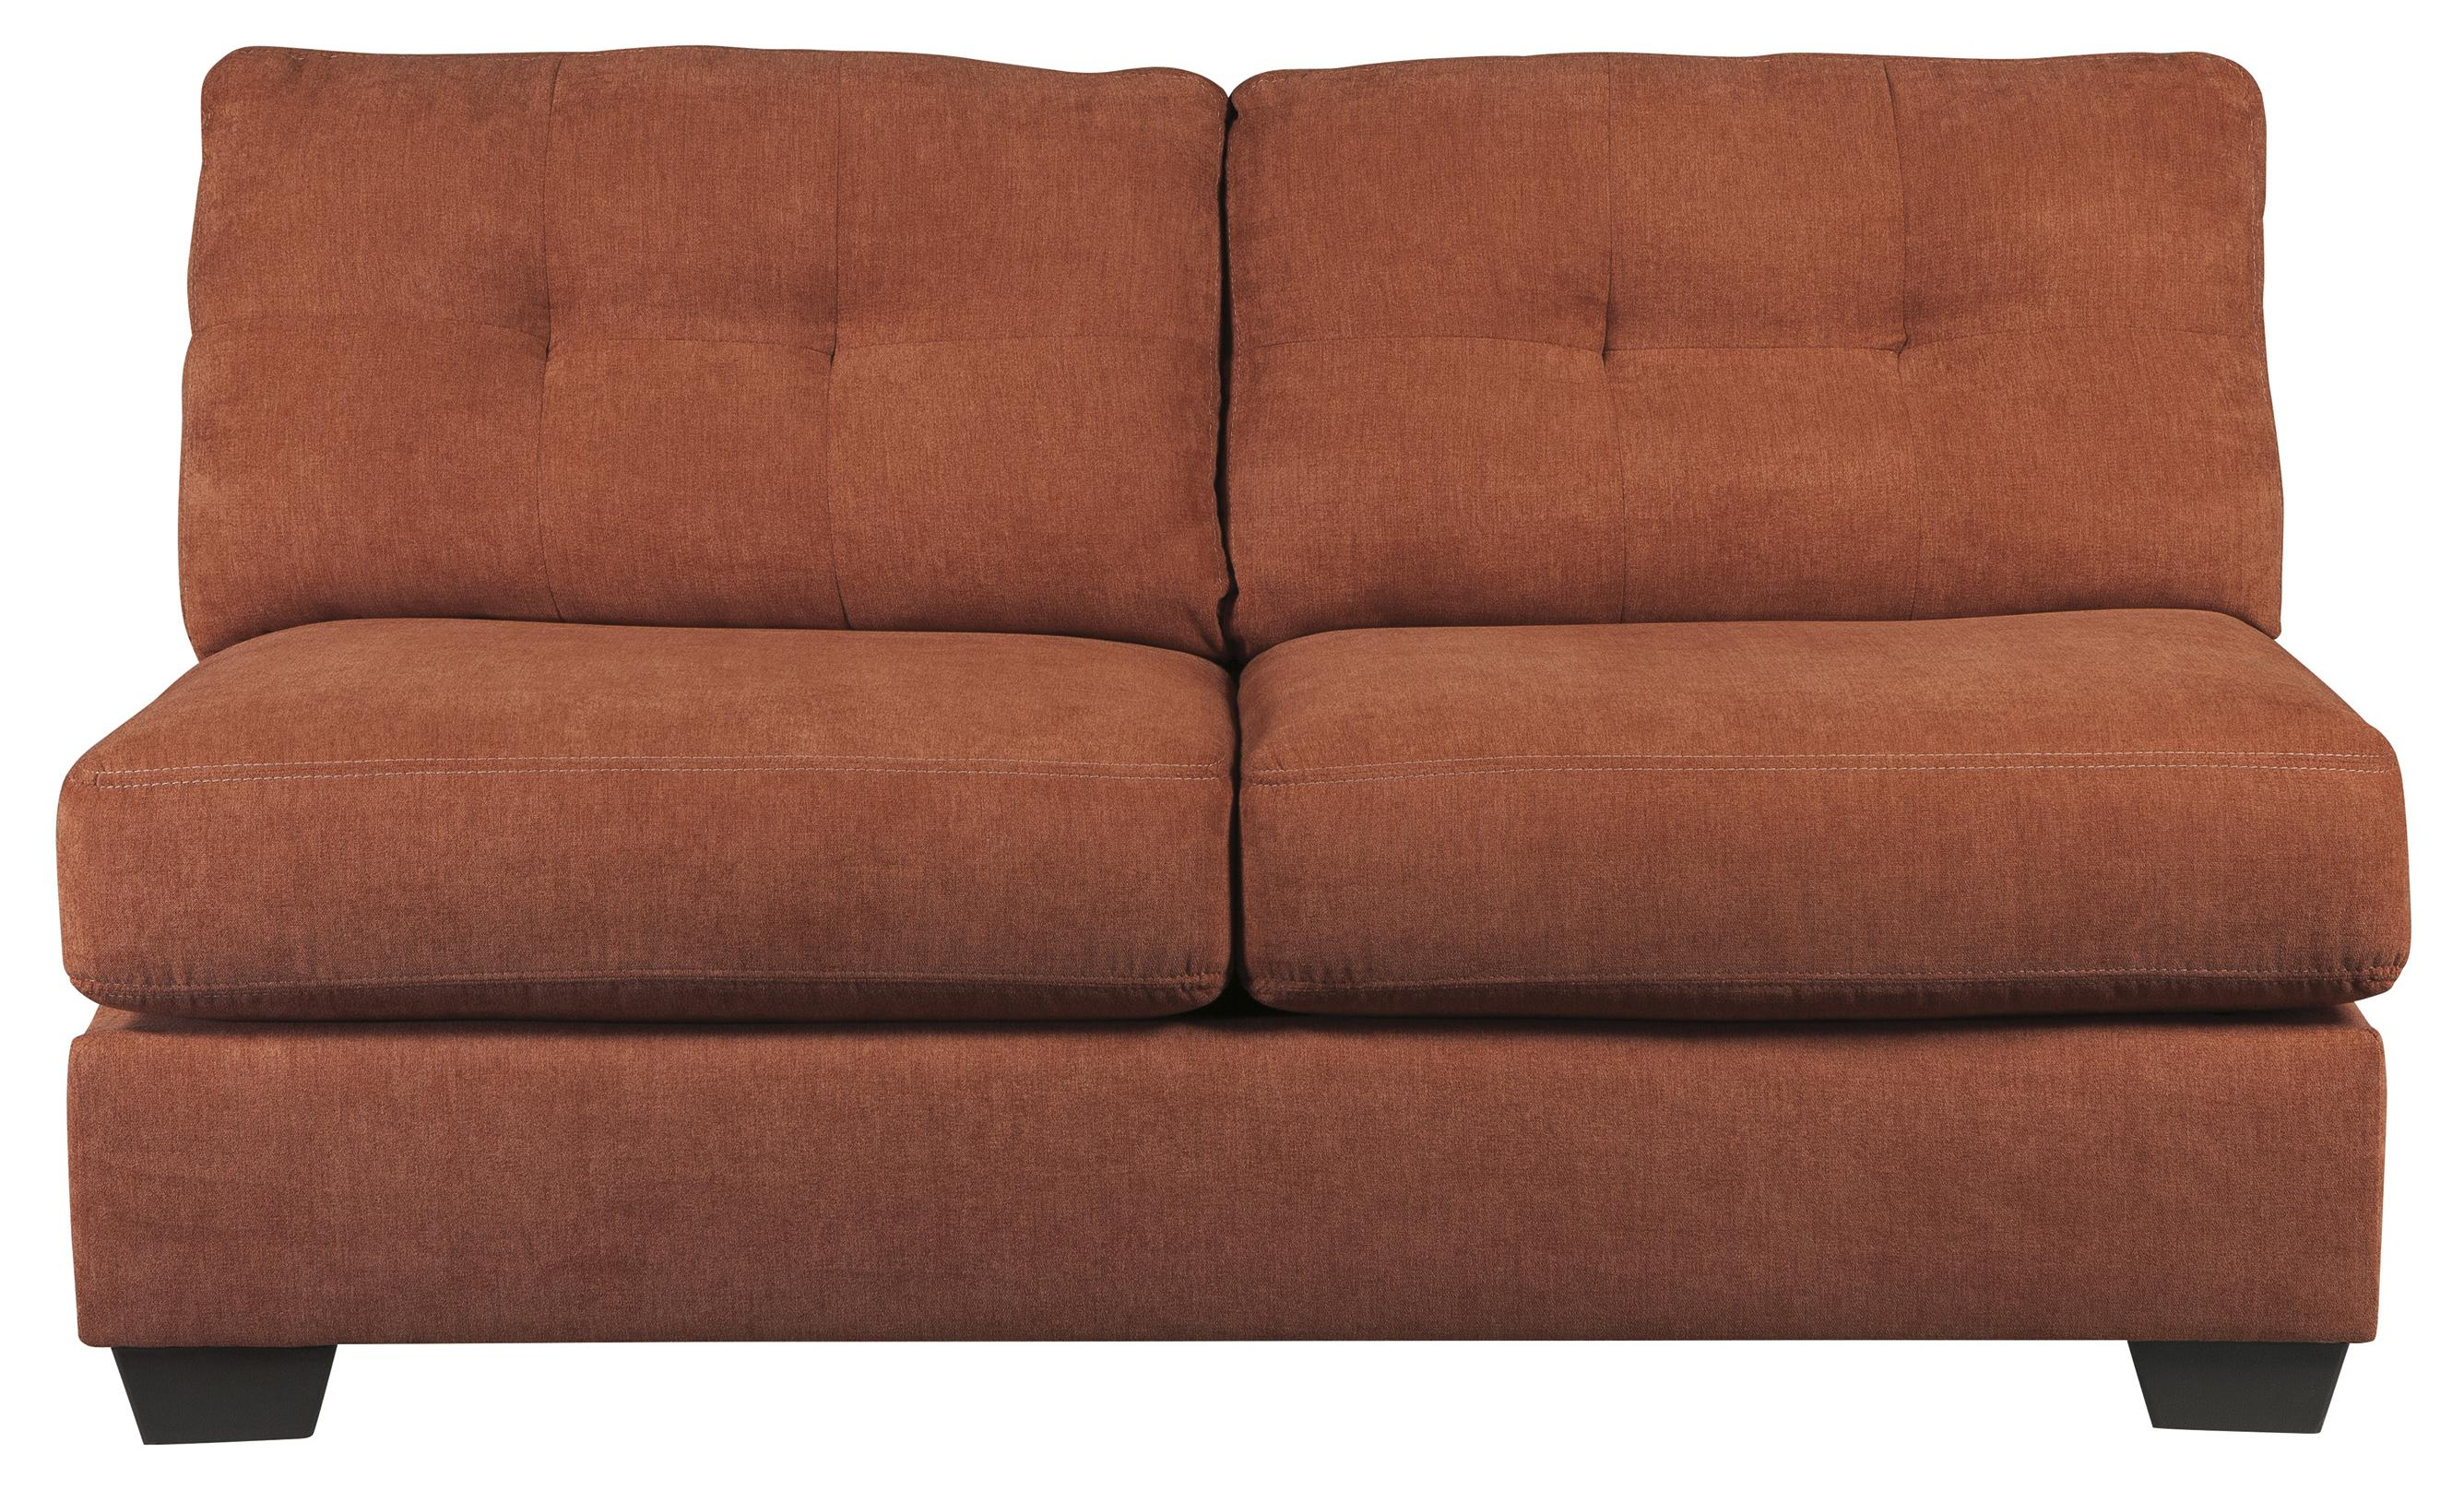 Benchcraft Delta City - Rust Armless Loveseat - Item Number: 1970134